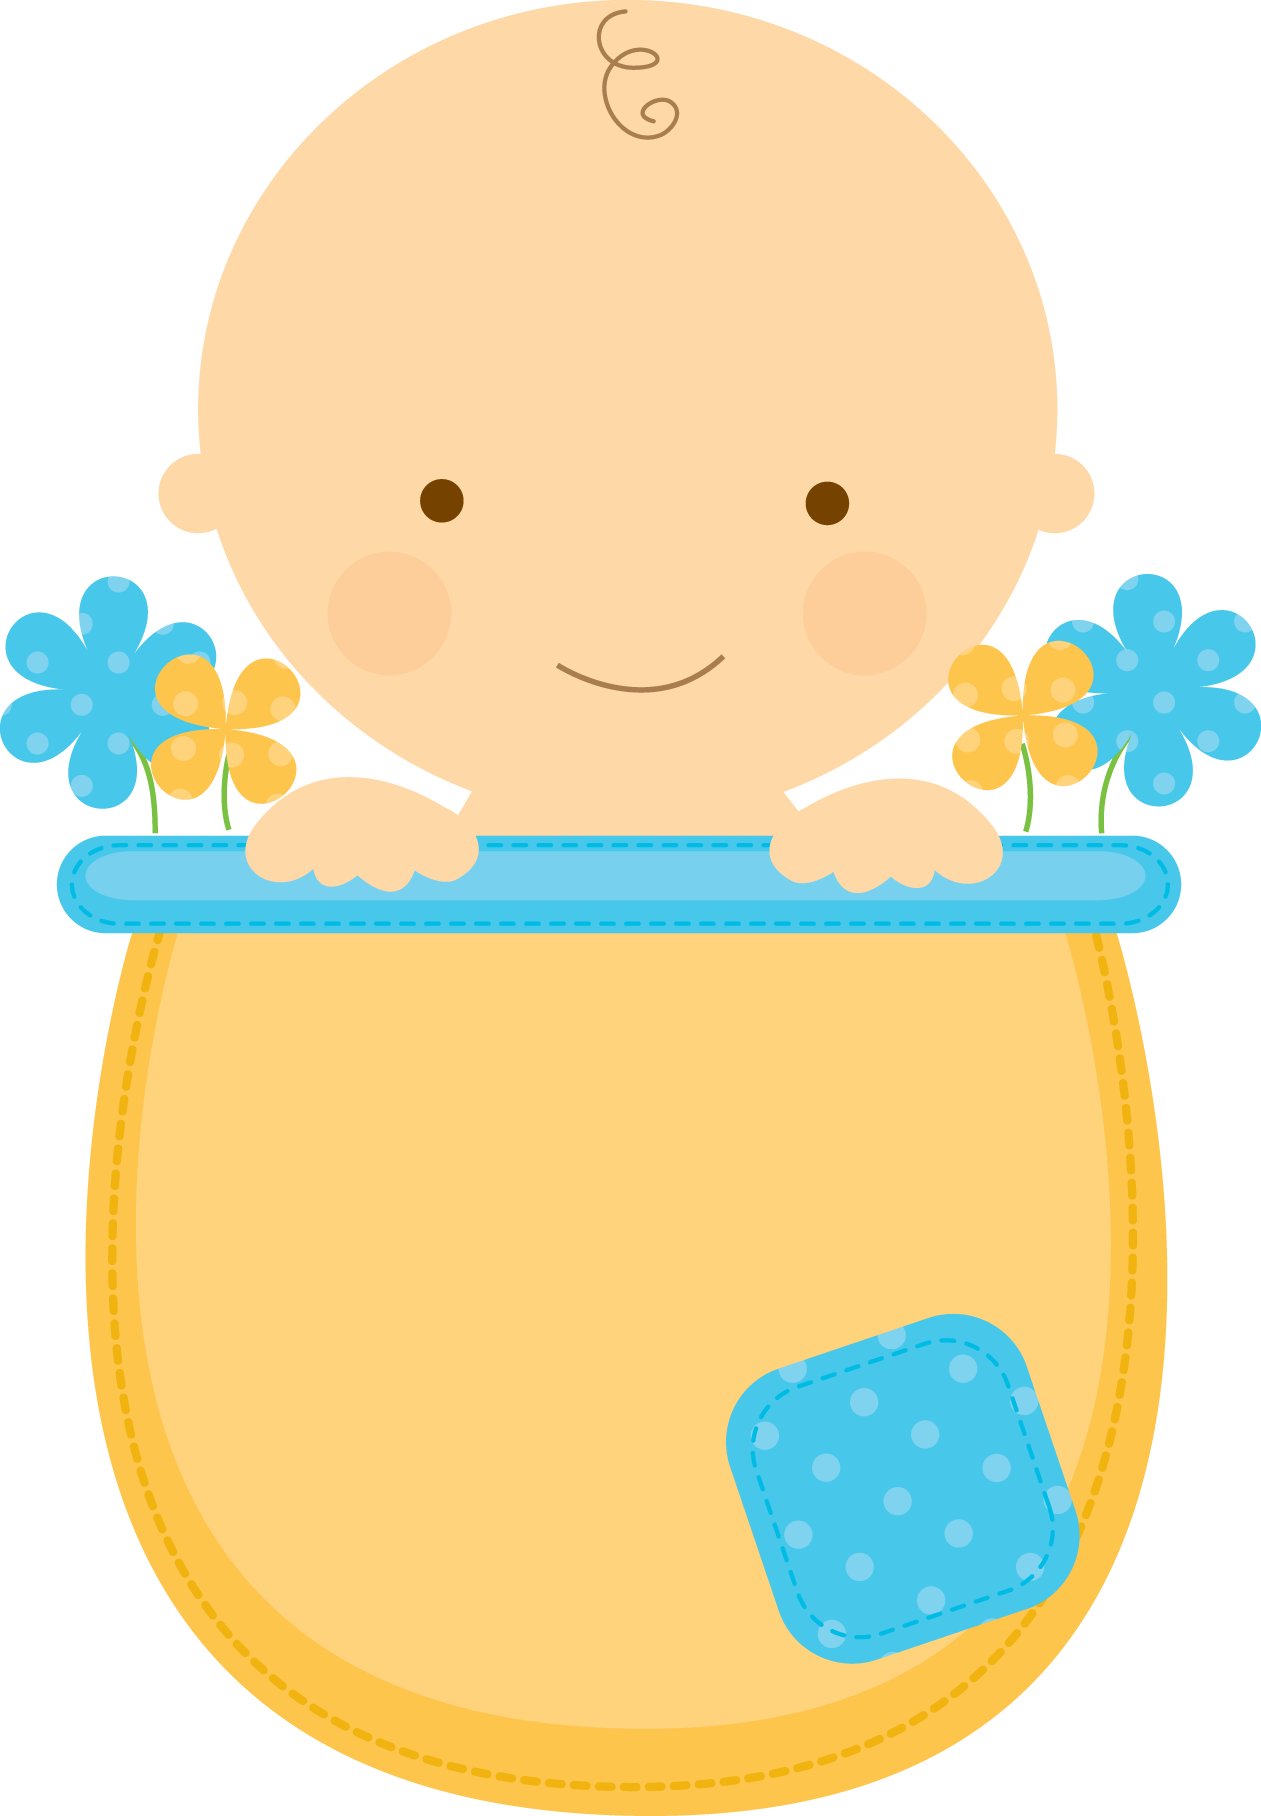 Tree clipart baby shower. Flowerpot babies babyinflowerpot boy